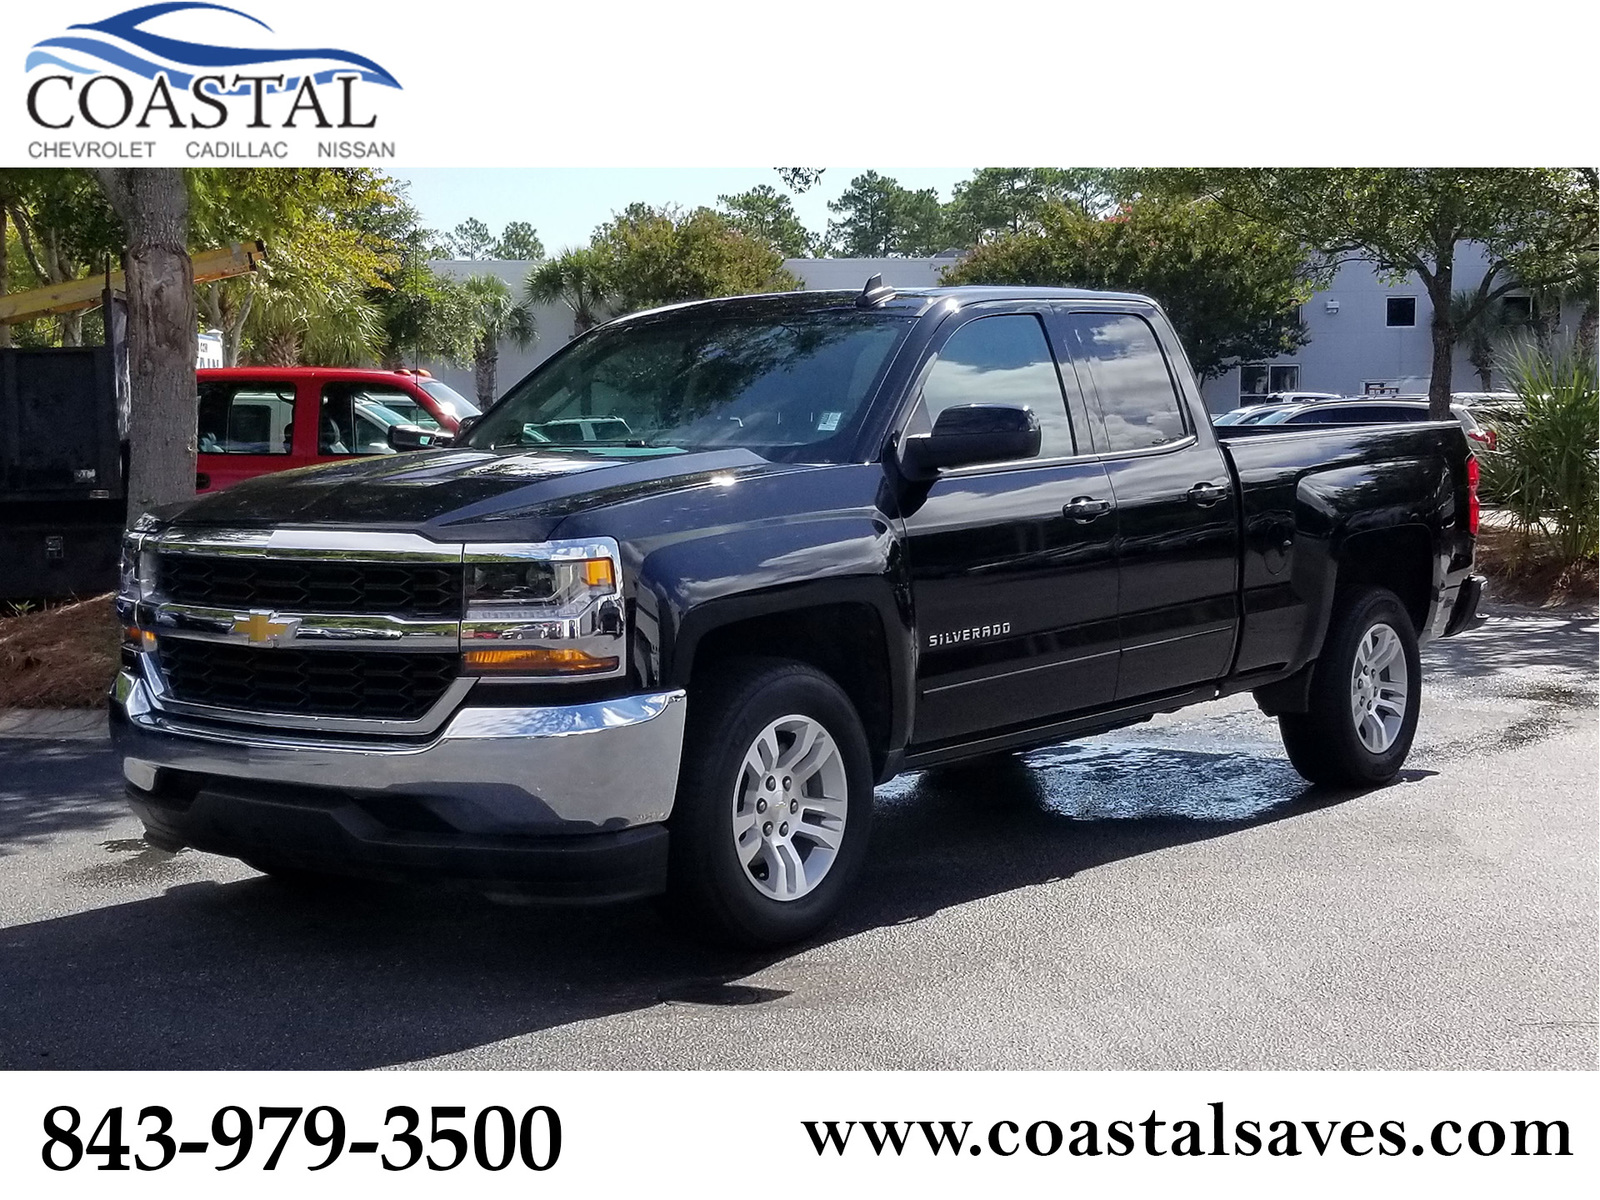 Pre-Owned 2019 Chevrolet Silverado 1500 LD 2WD Double Cab LT